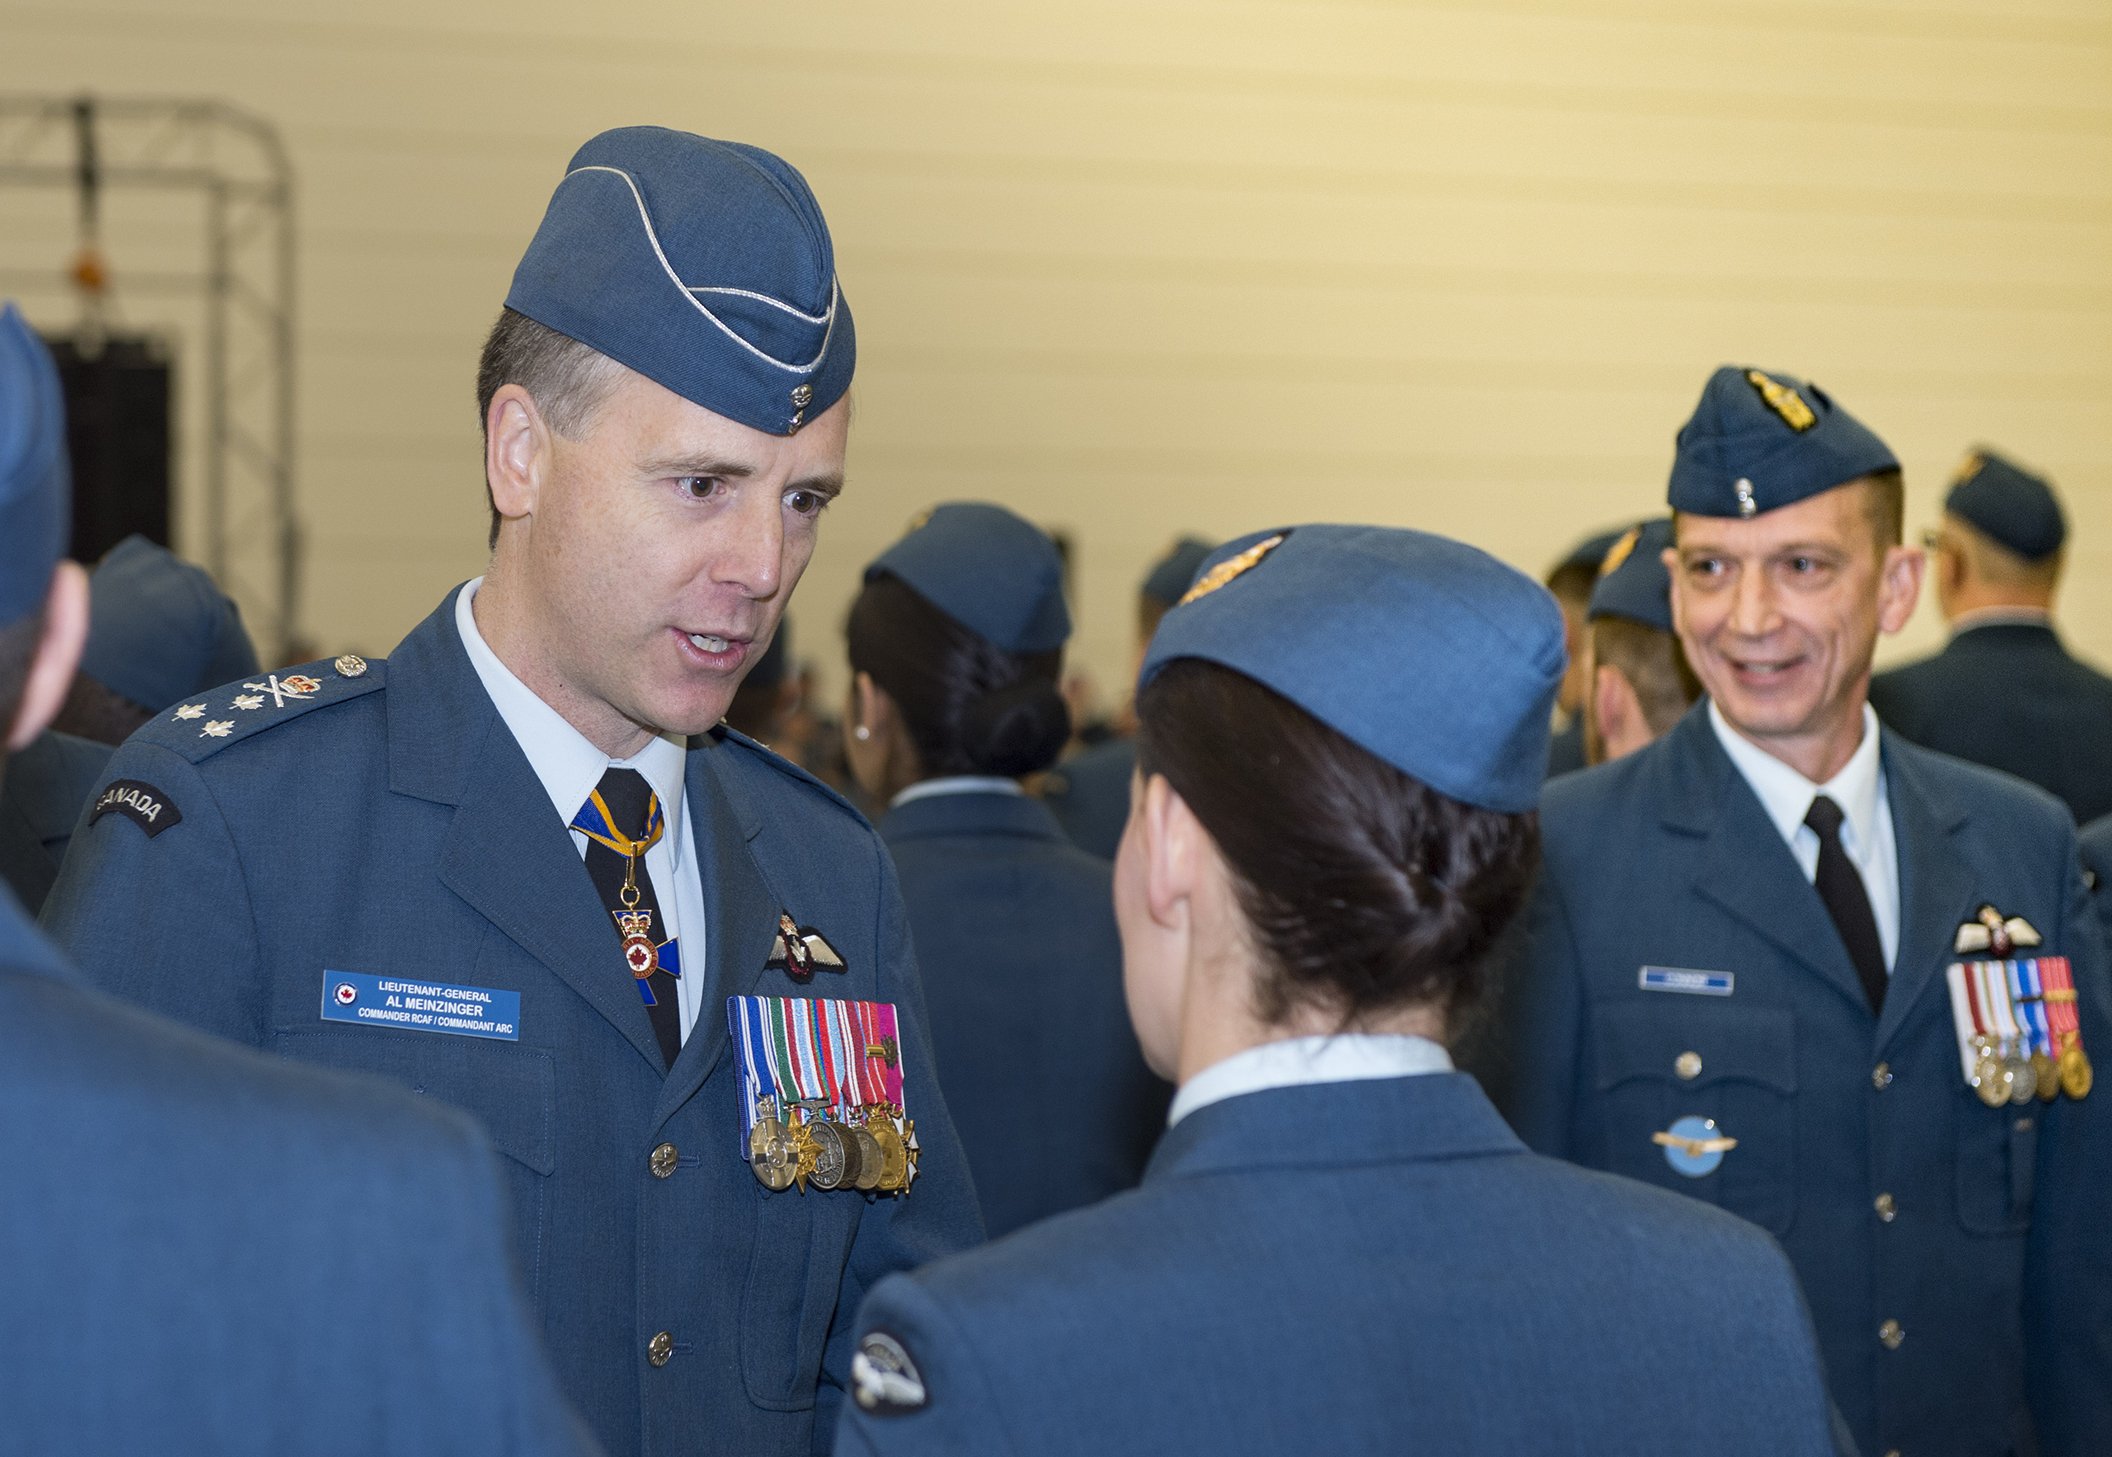 Lieutenant-General Al Meinzinger, commander of the RCAF, reviews aviators participating in the parade. PHOTO: Leading Seaman Laurance Clarke, SW05-2018-0497-601-2